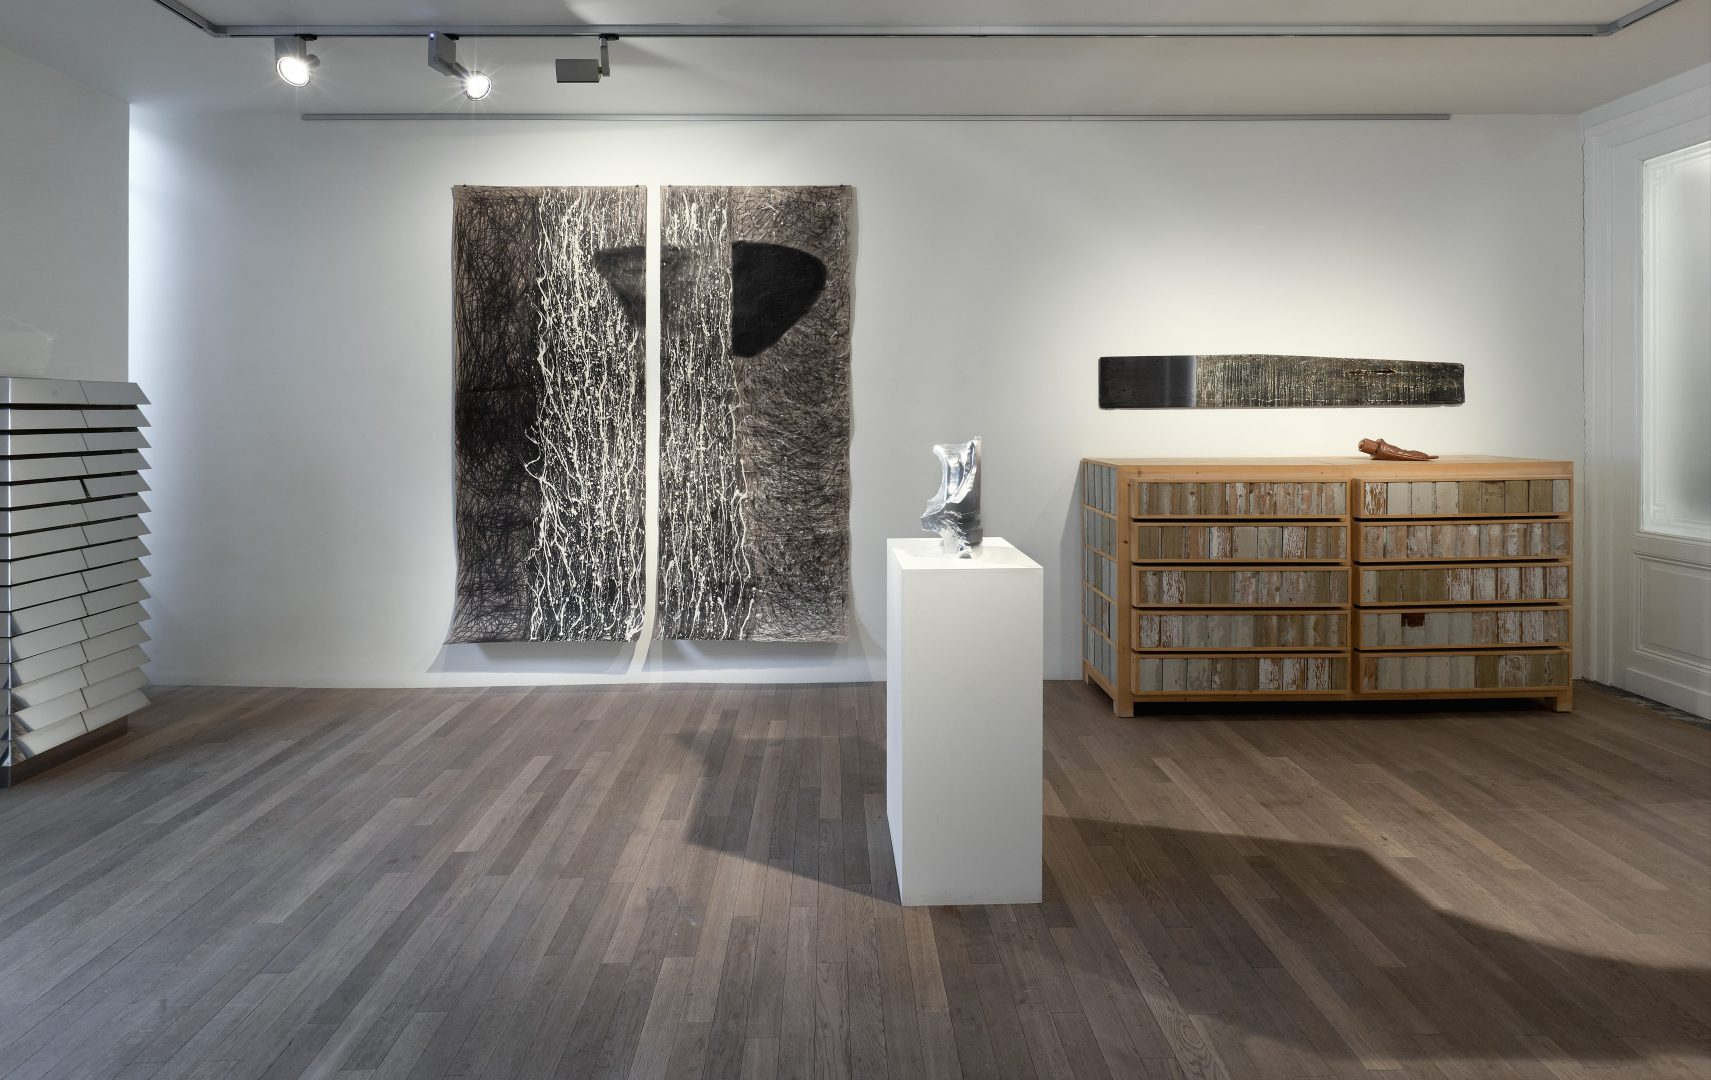 2012 - Gallery Stevens, solo show